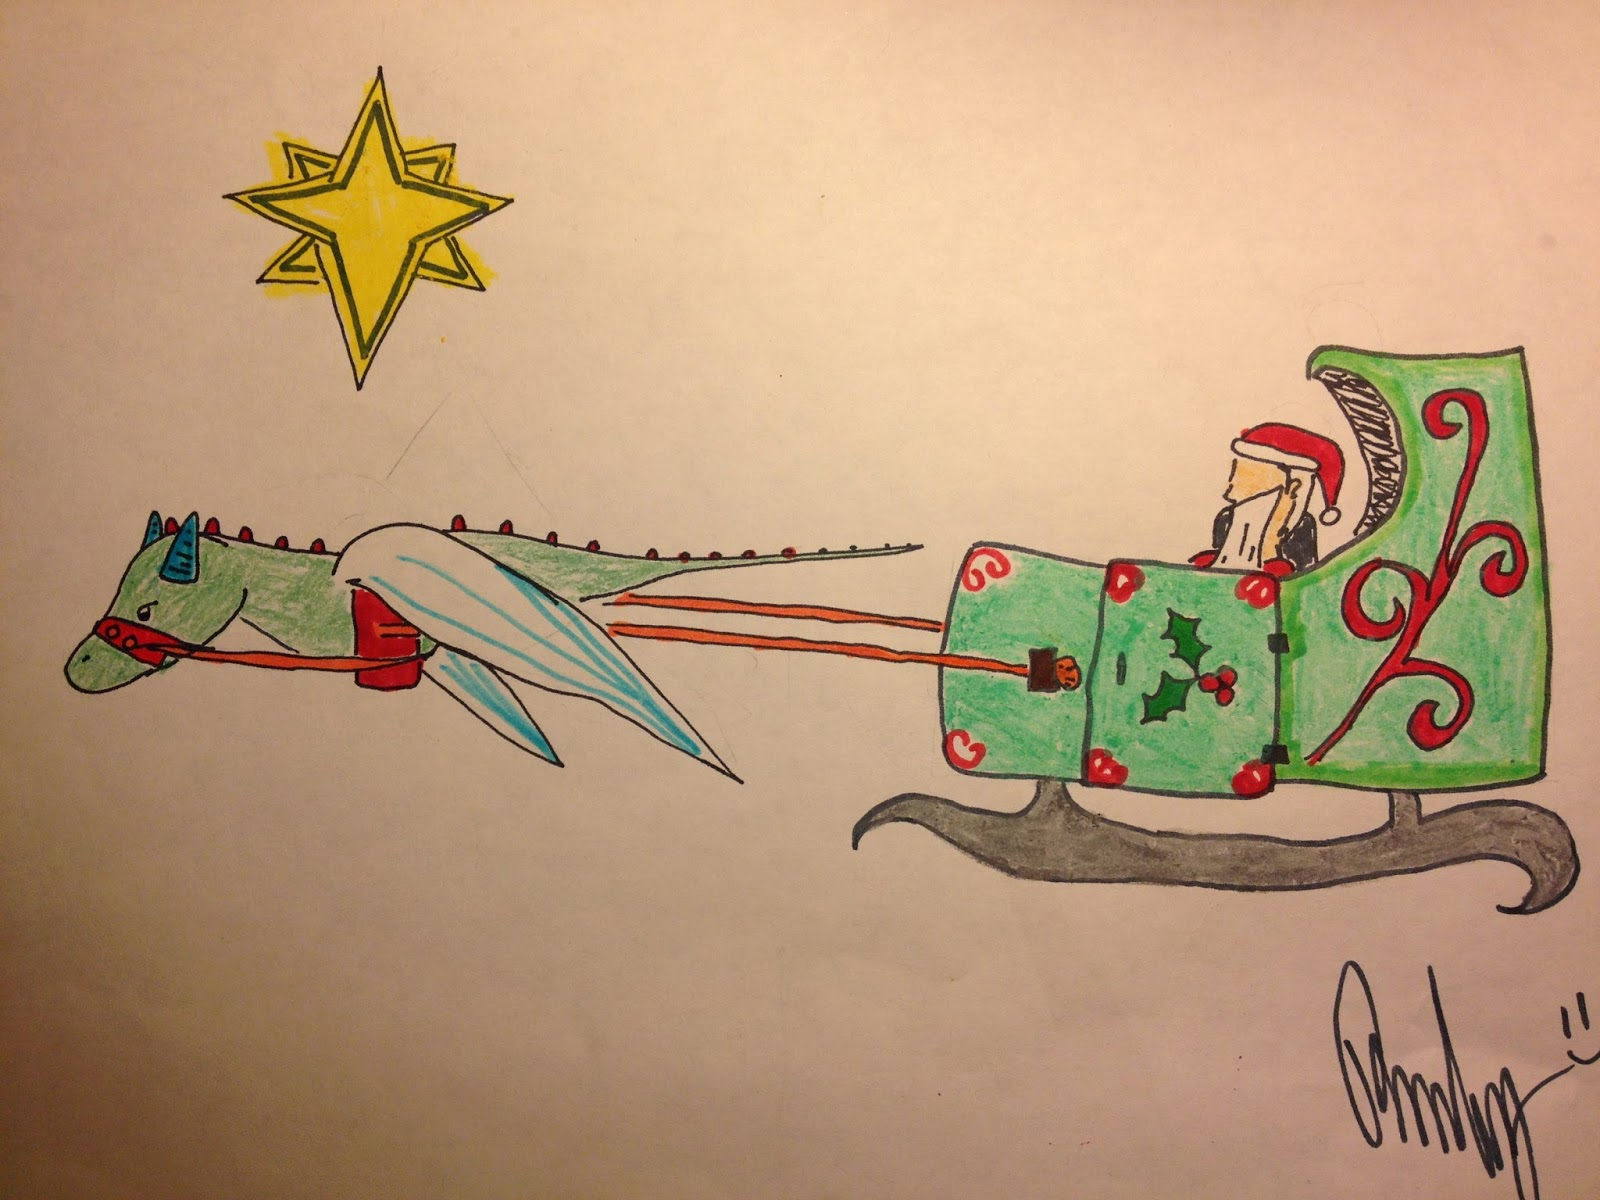 Santa's sleigh being pulled by a dragon